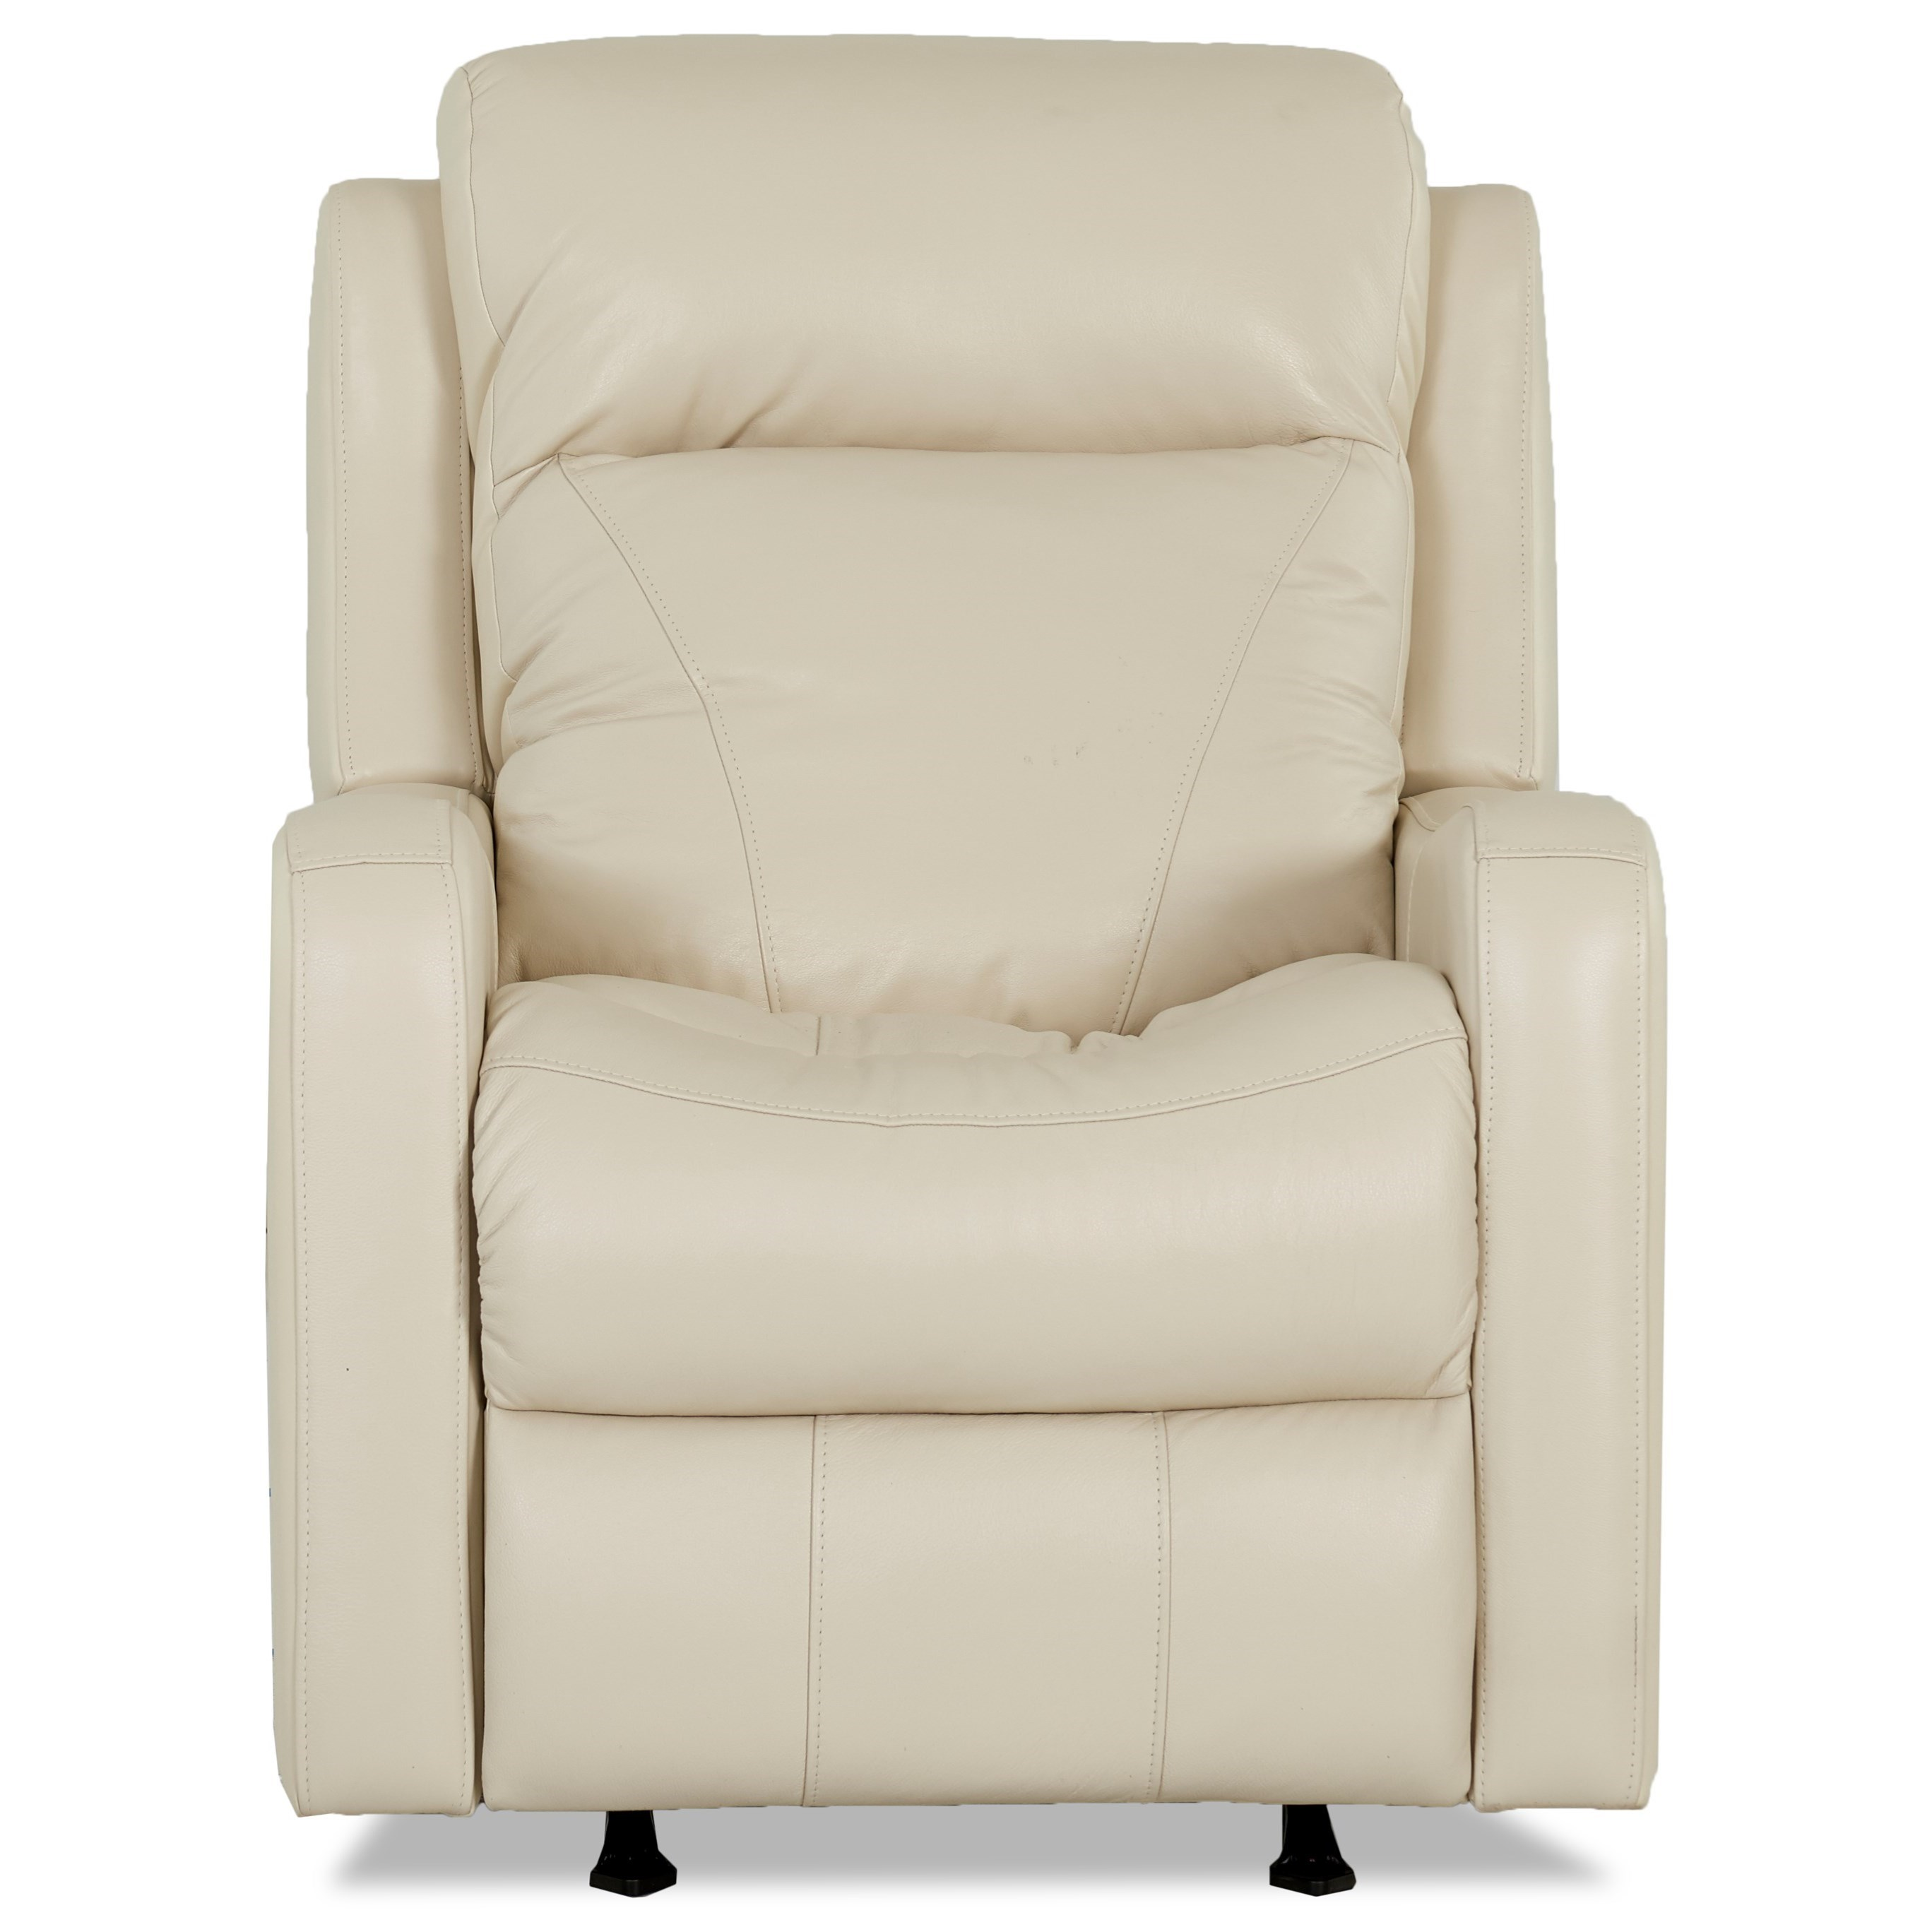 Power Rocker Recliner With Power Headrest And Lumbar Support By Klaussner Wolf And Gardiner